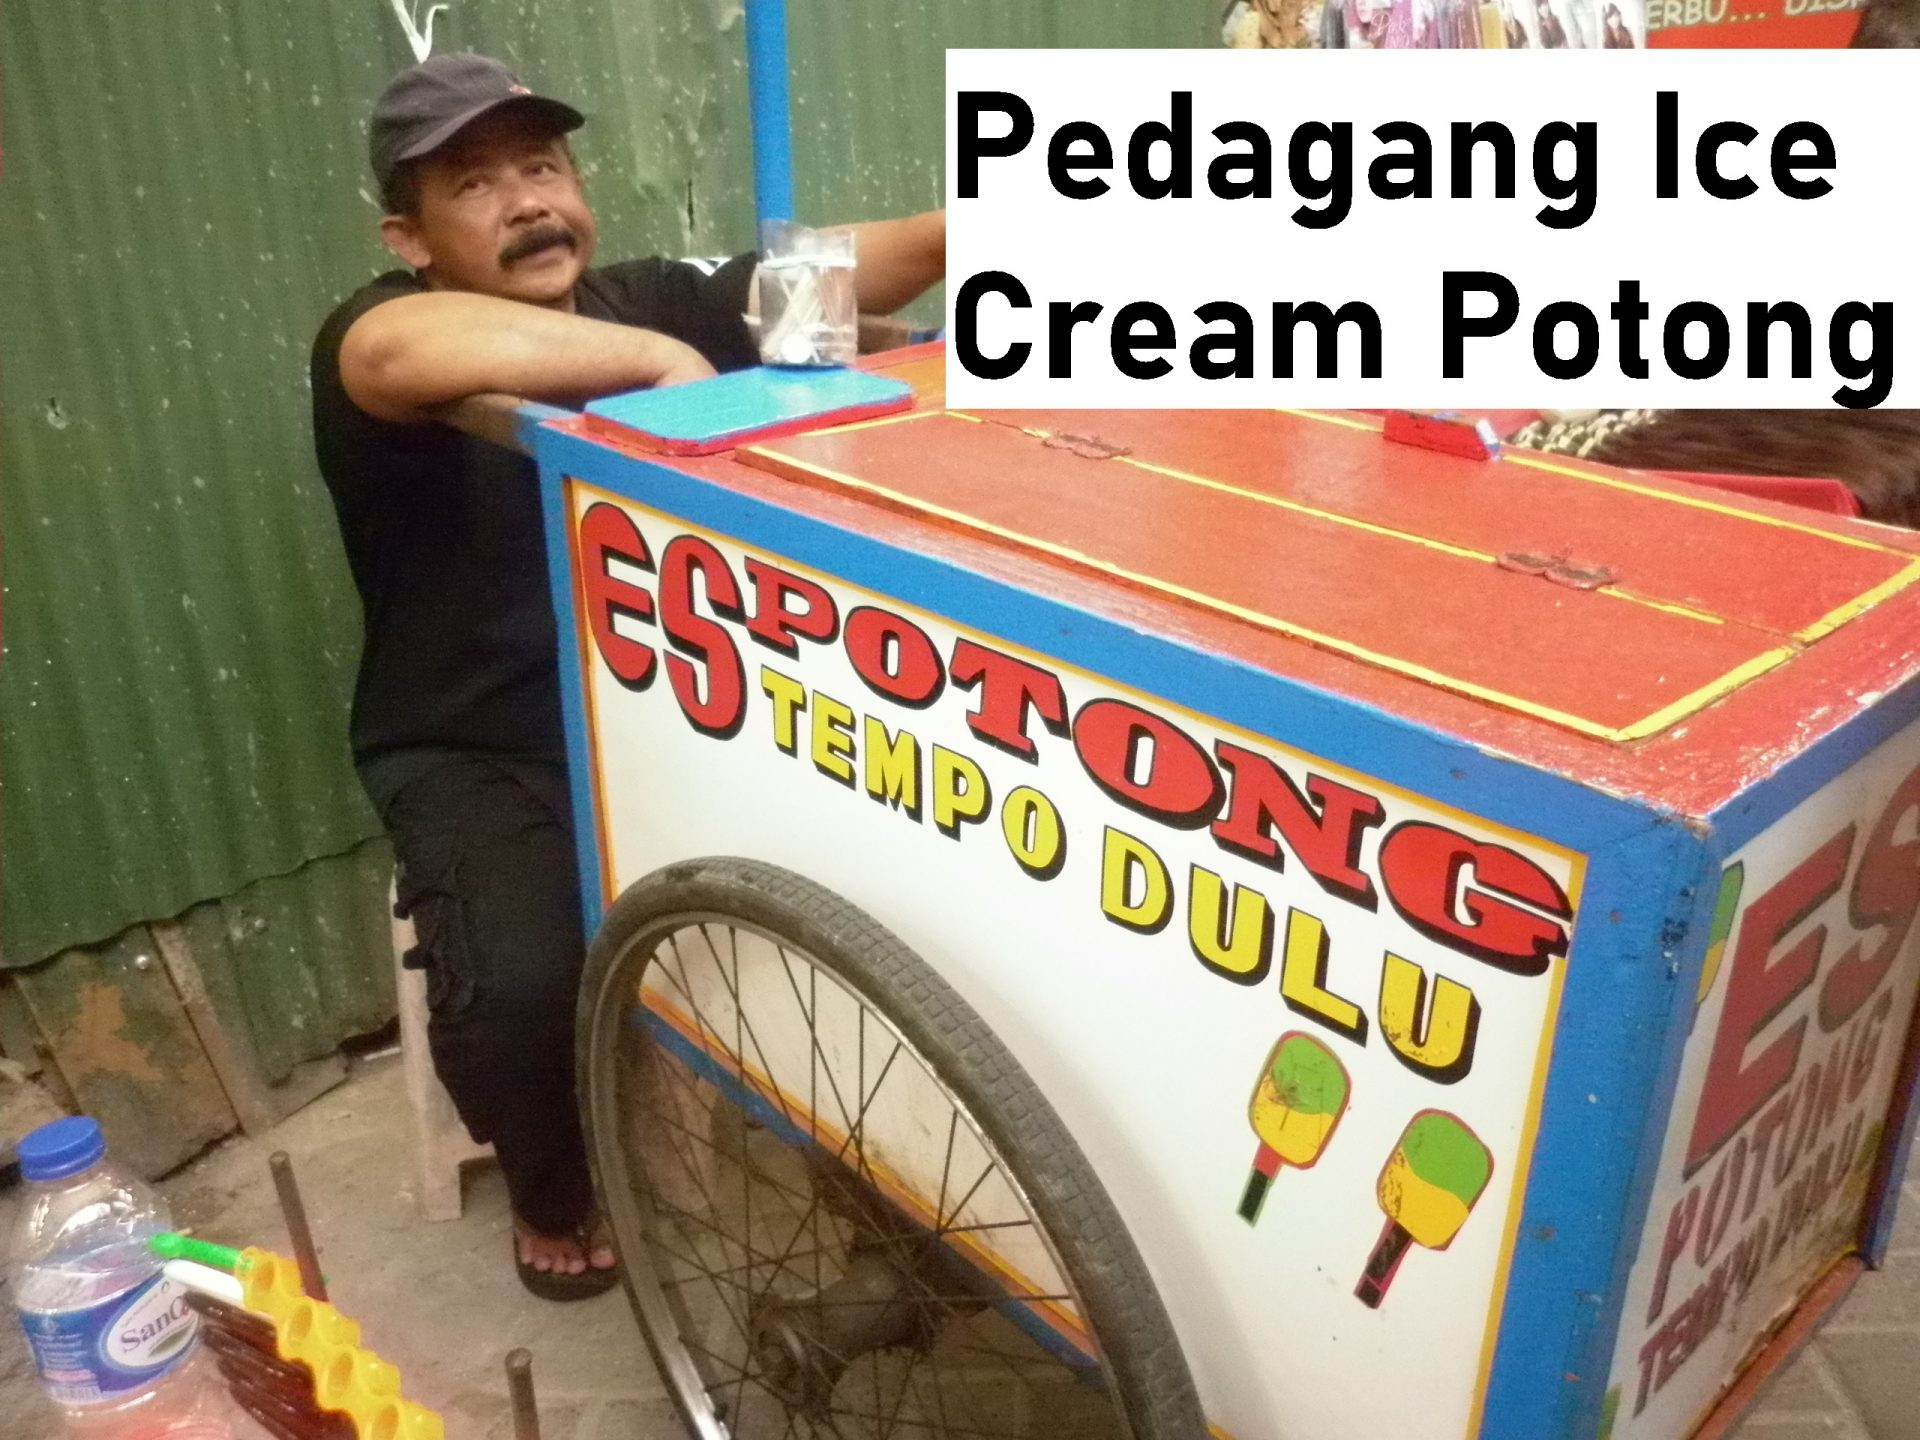 Pedagang Ice Cream Potong